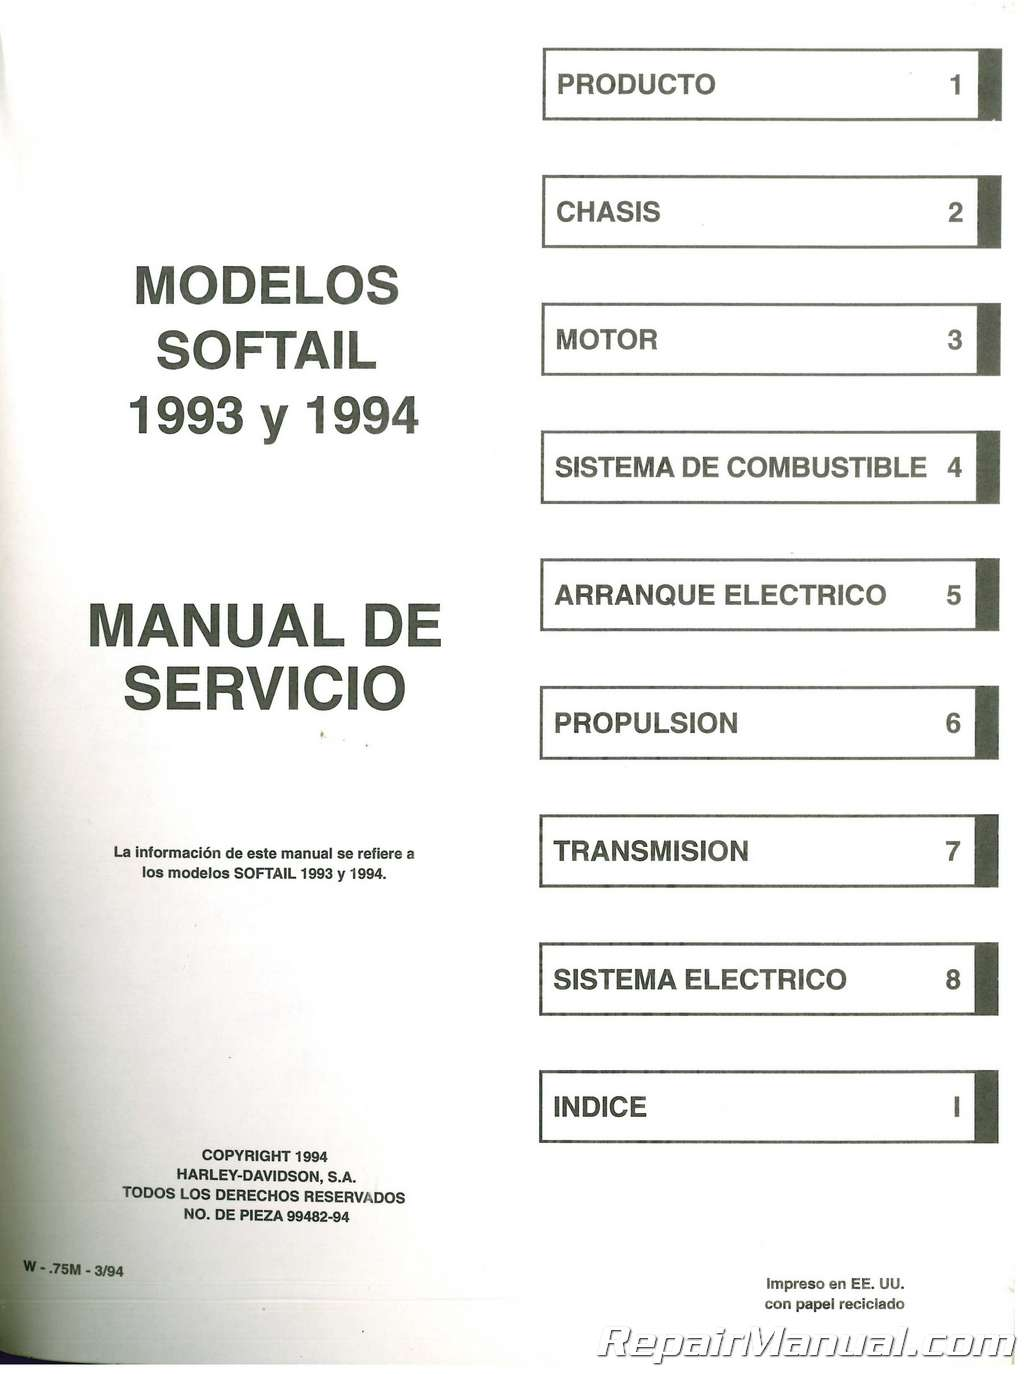 USED 1993-1994 Harley Davidson SPANISH Version Softail Motorcycle Service  Manual